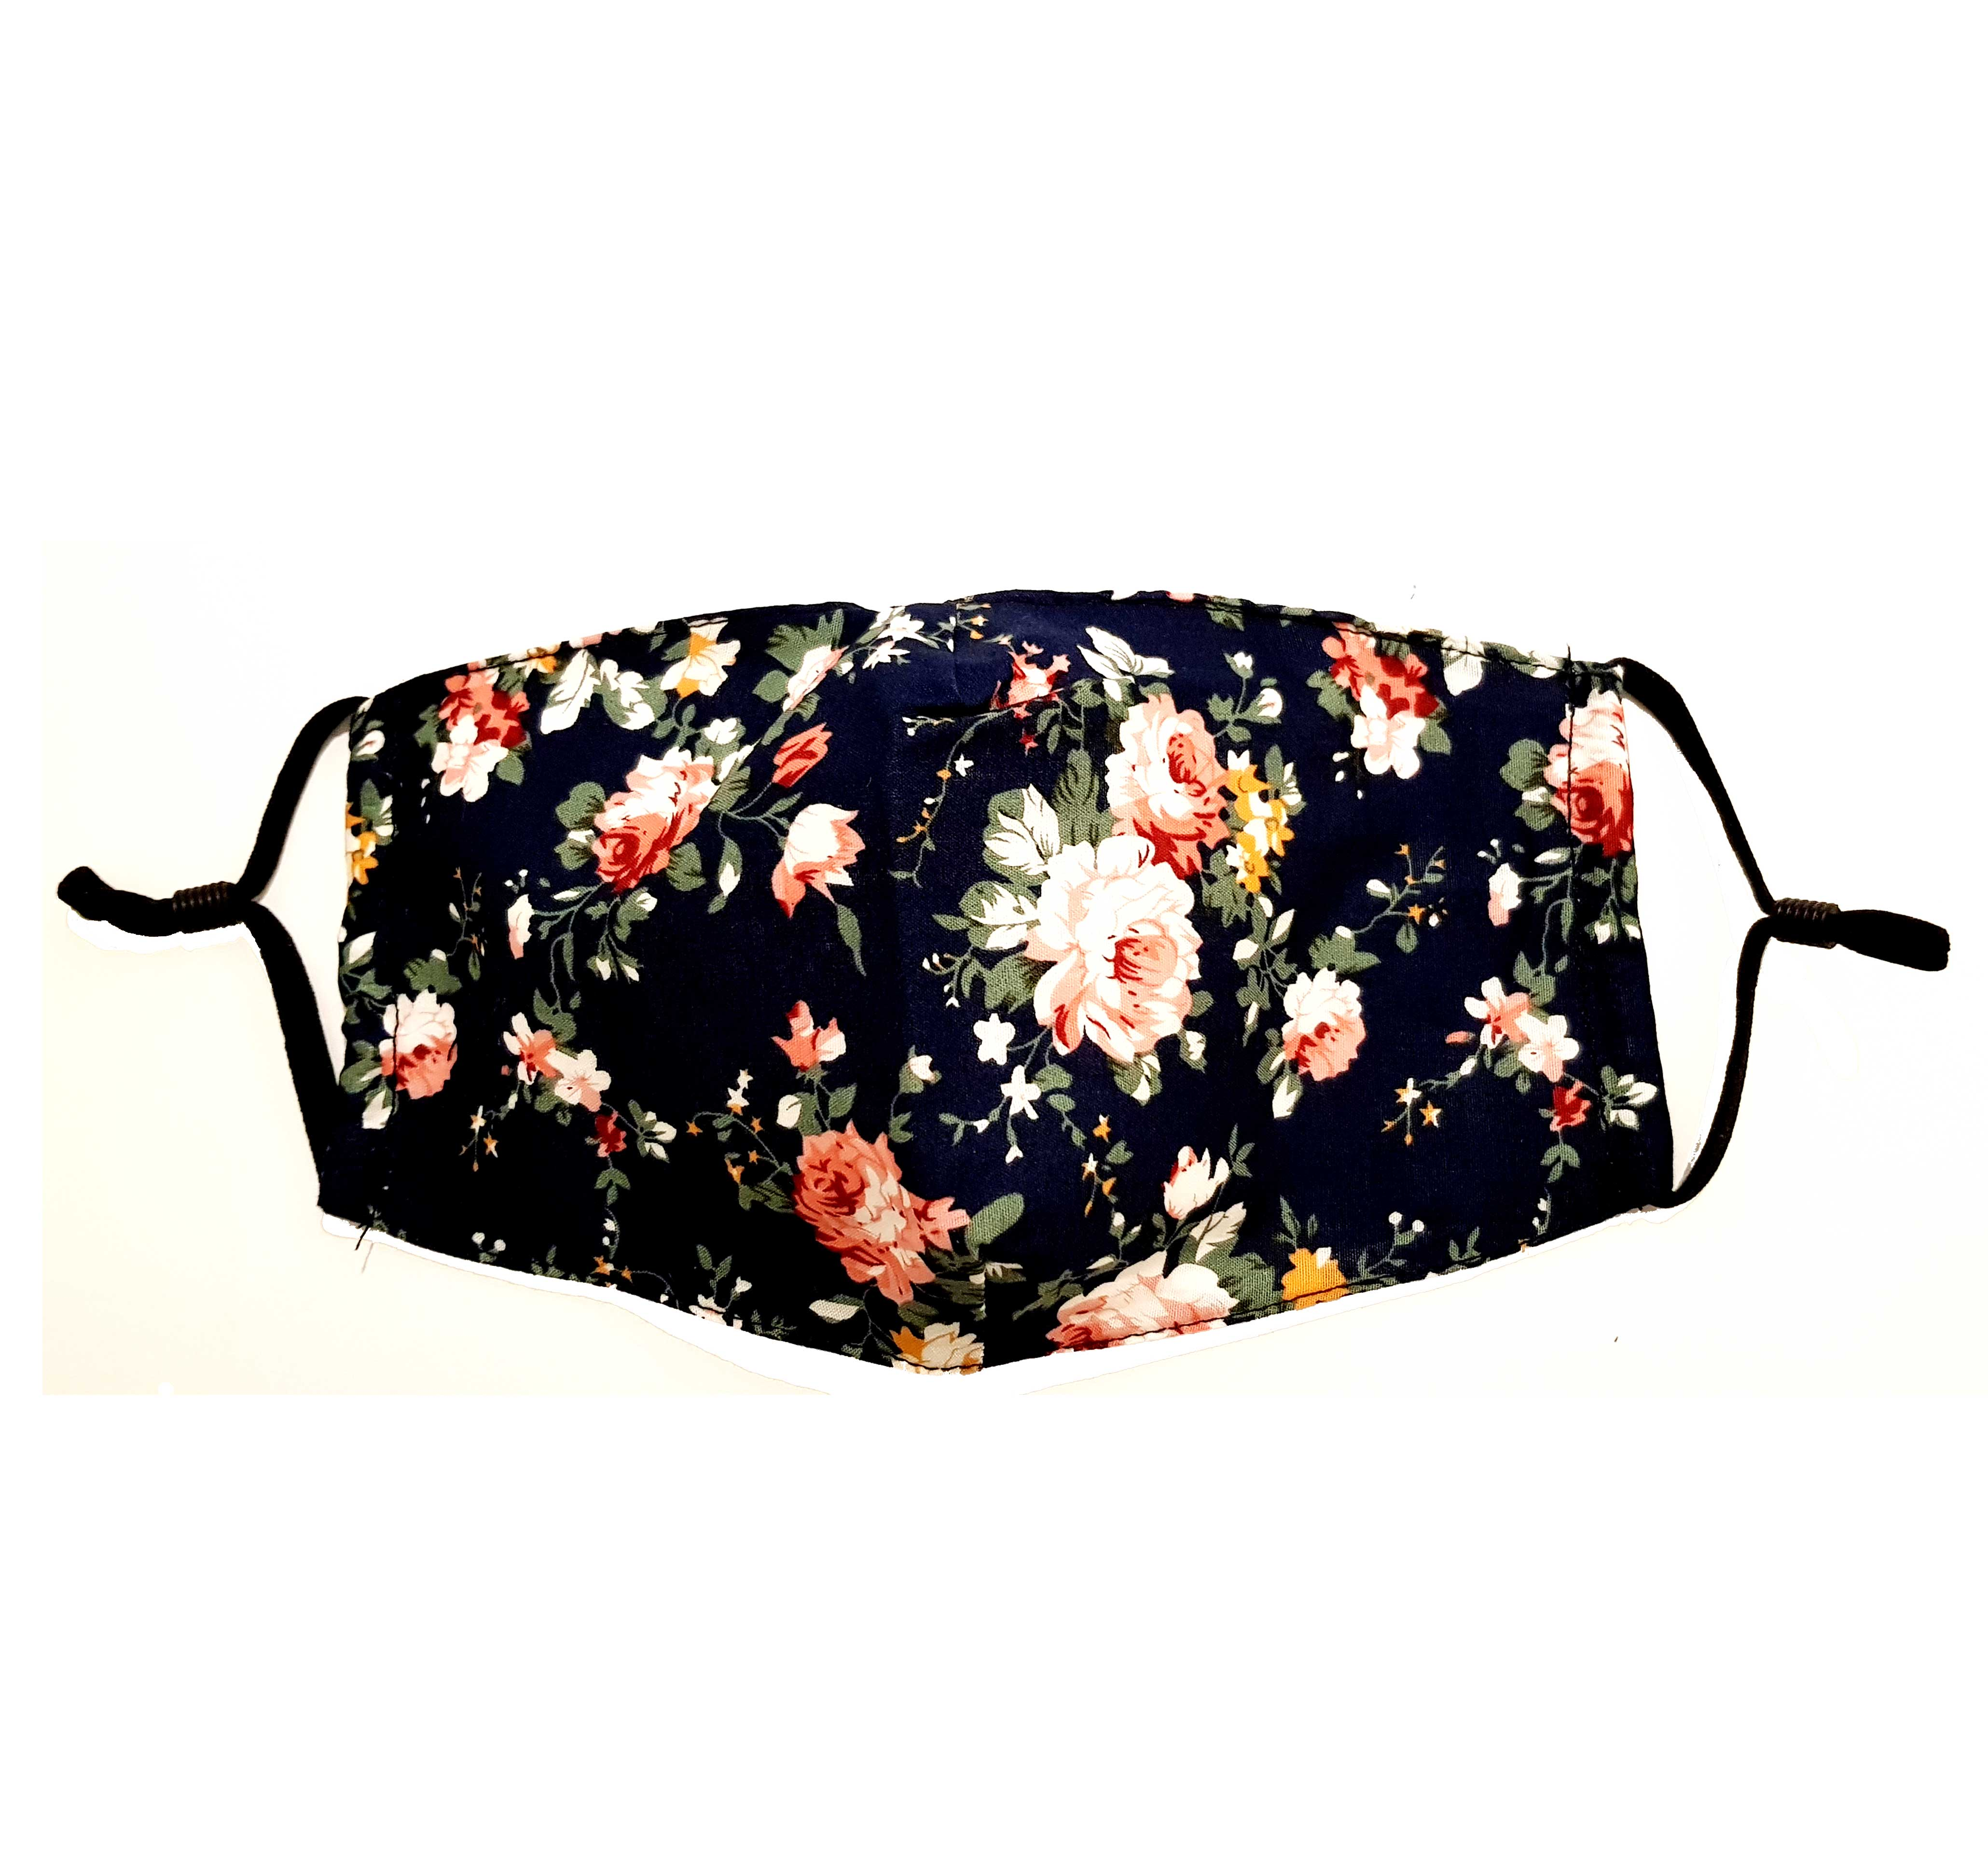 Flower Showers Print Washable Mouth Mask + 2 Protective PM 2.5 Filters